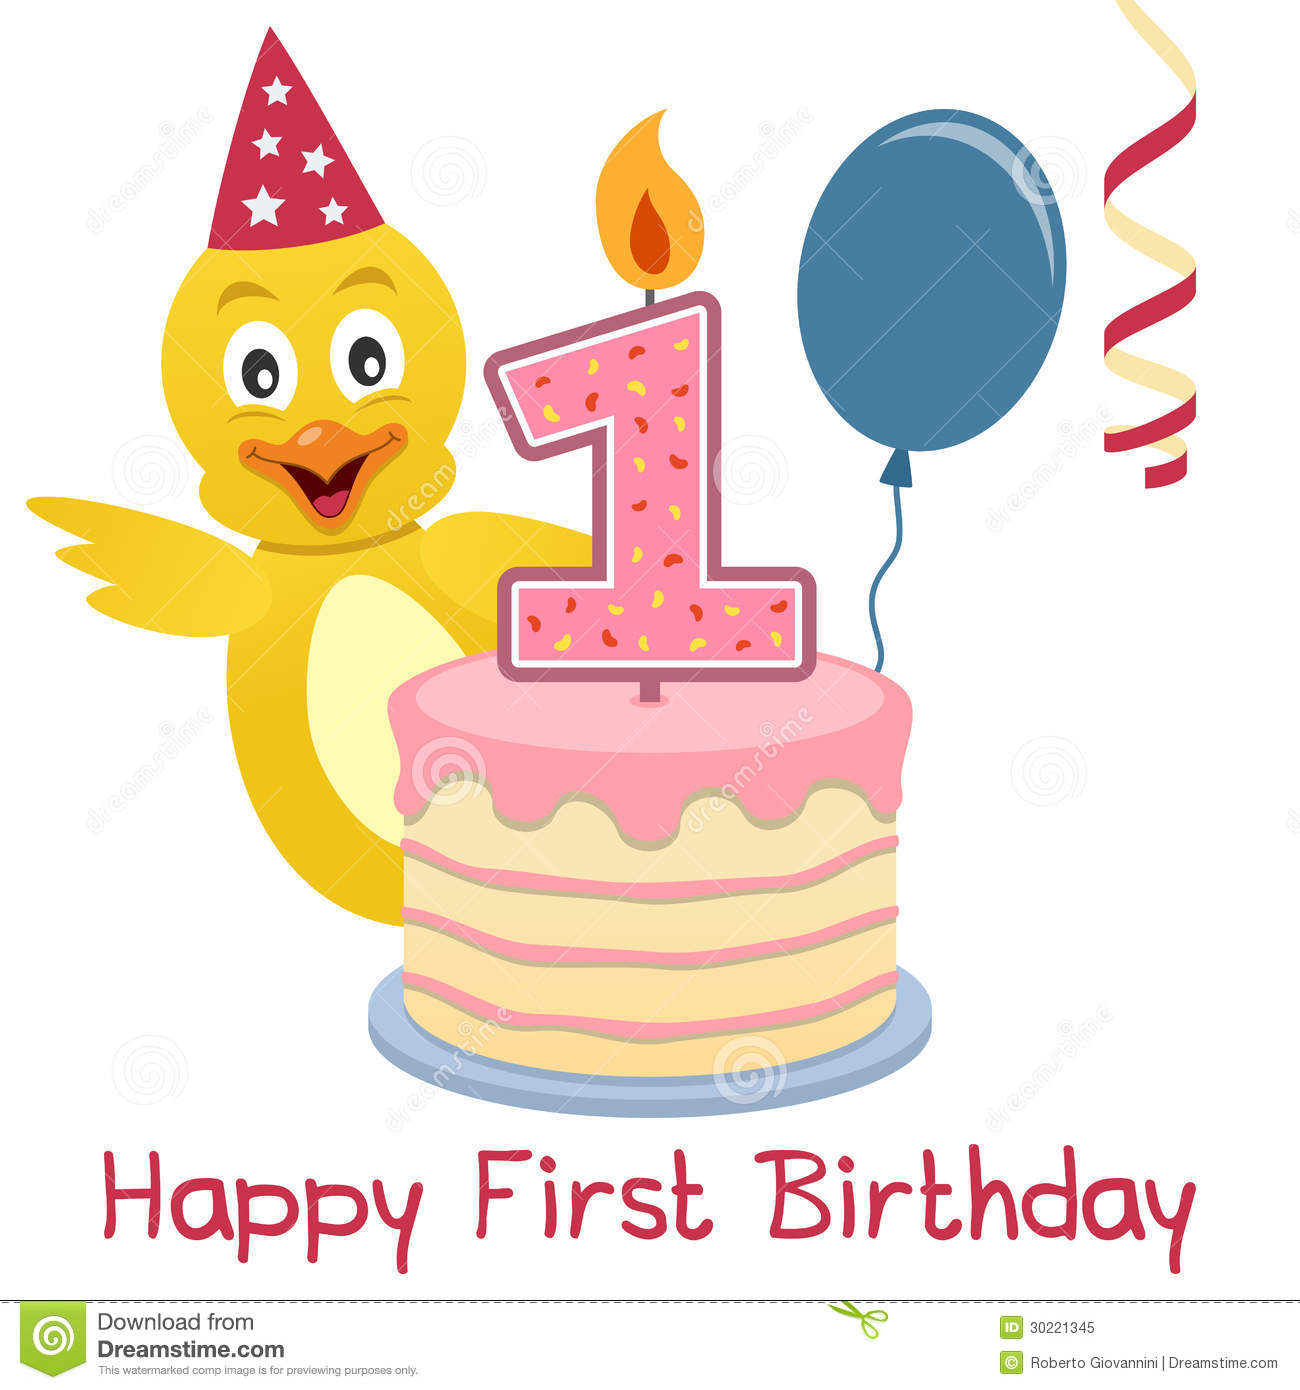 one year old birthday card wishes ; 1st%2520birthday%2520card%2520wishes%2520;%2520happy-first-birthday-greeting-card-funny-cute-chick-birthday-cake-numbered-candle-red-balloon-blue-streamer-30221345